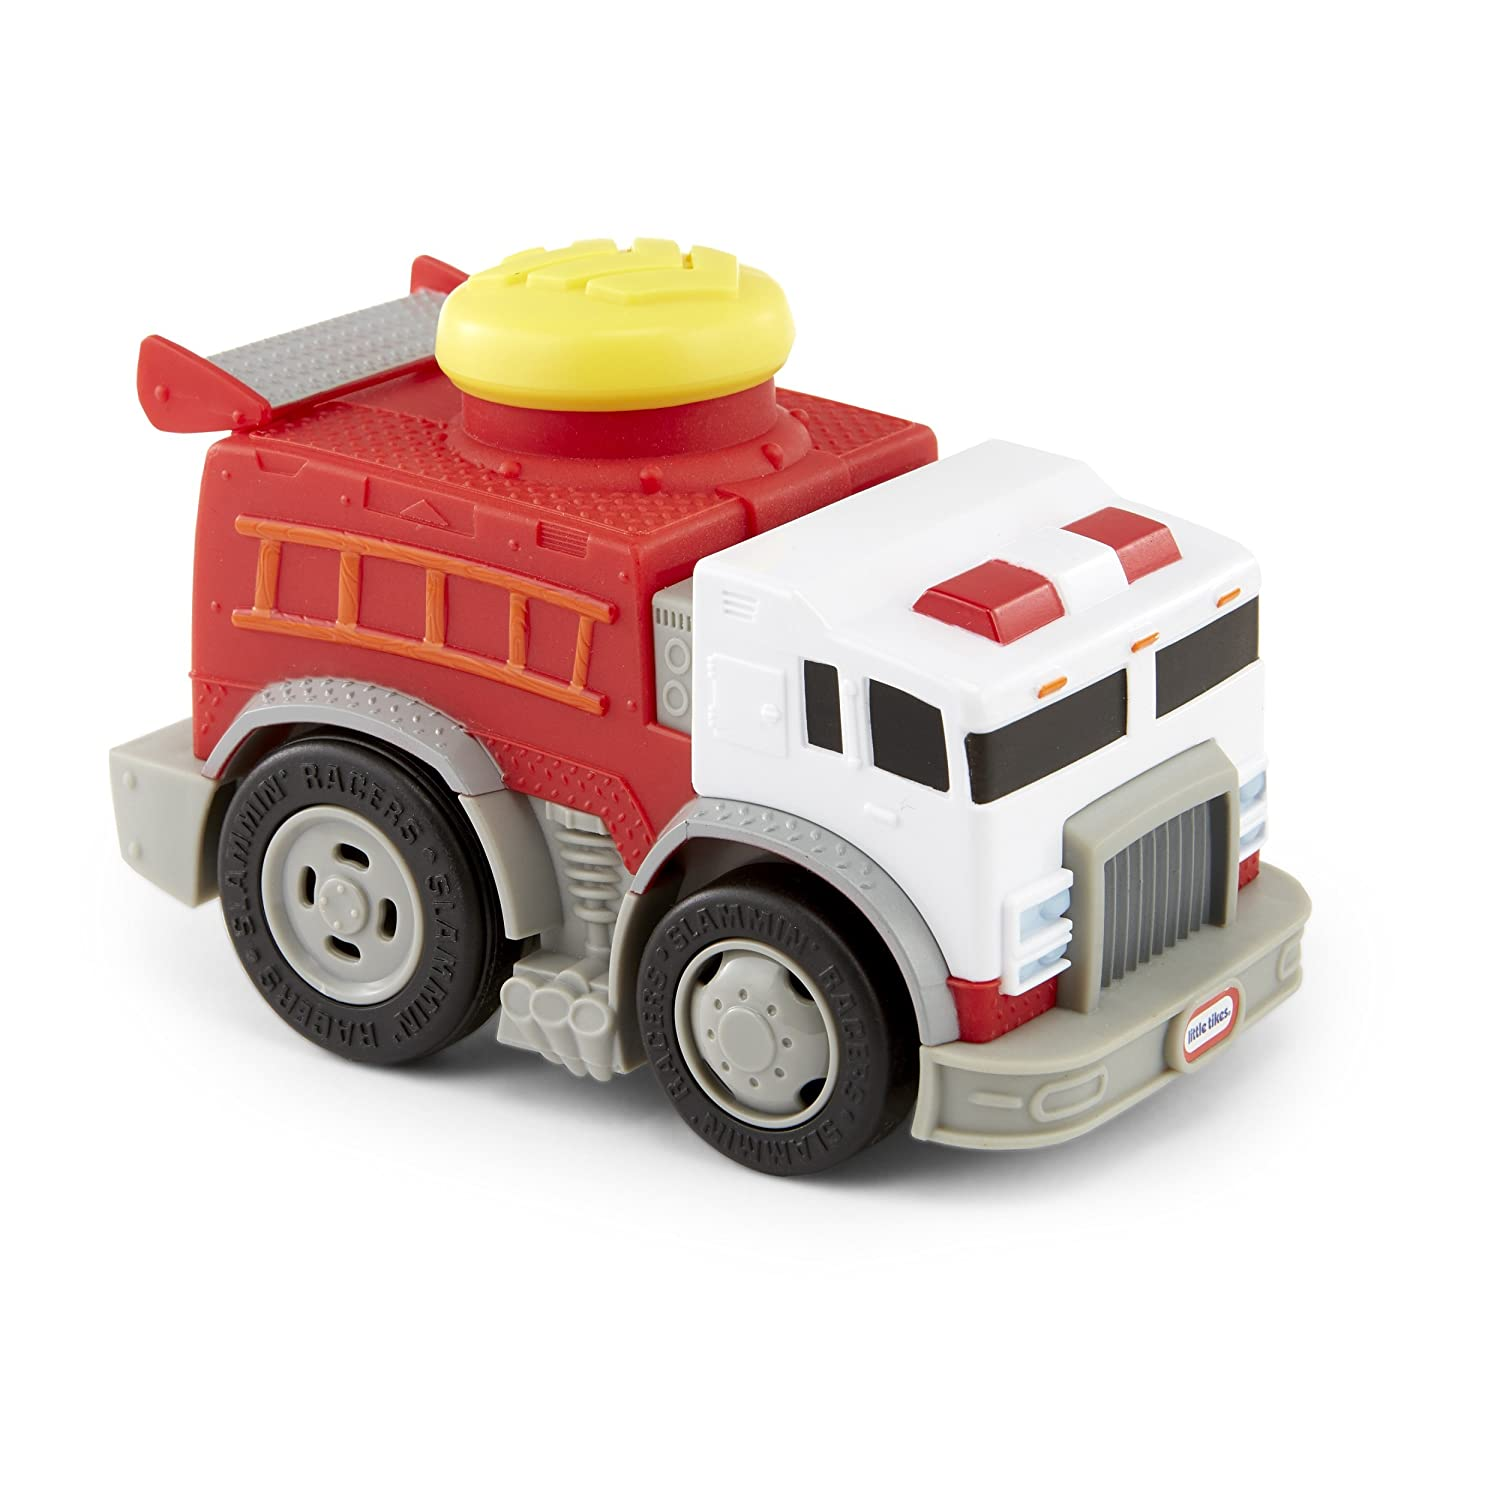 Little Tikes 647277 Slammin' Racers Fire Engine Toy, Multicolor MGA Entertainment